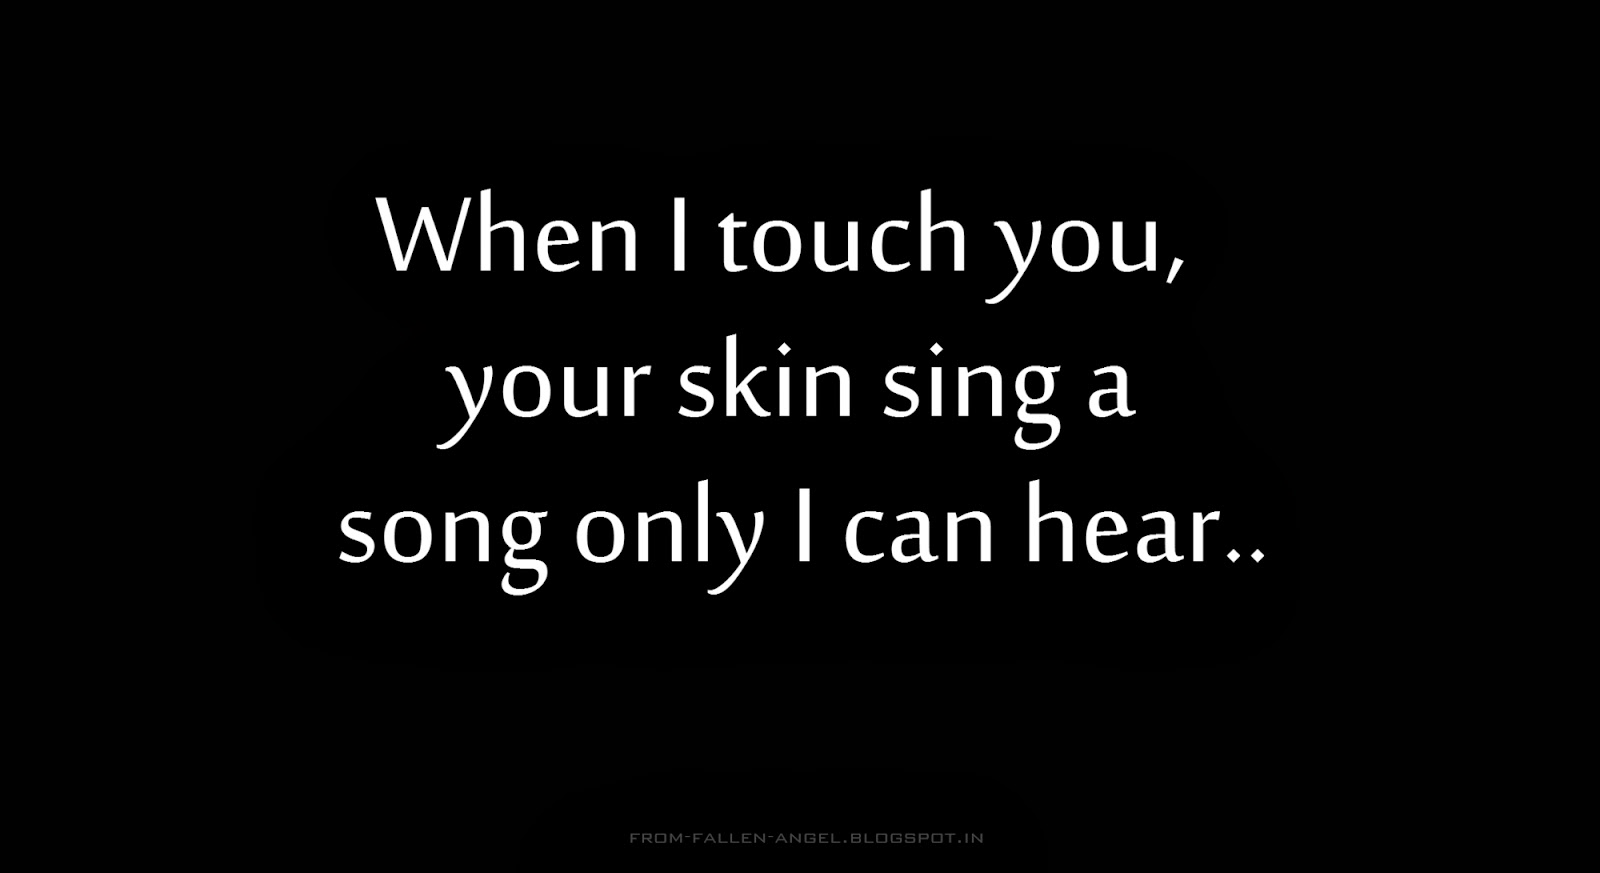 When I touch you,  your skin sing a song only I can hear.